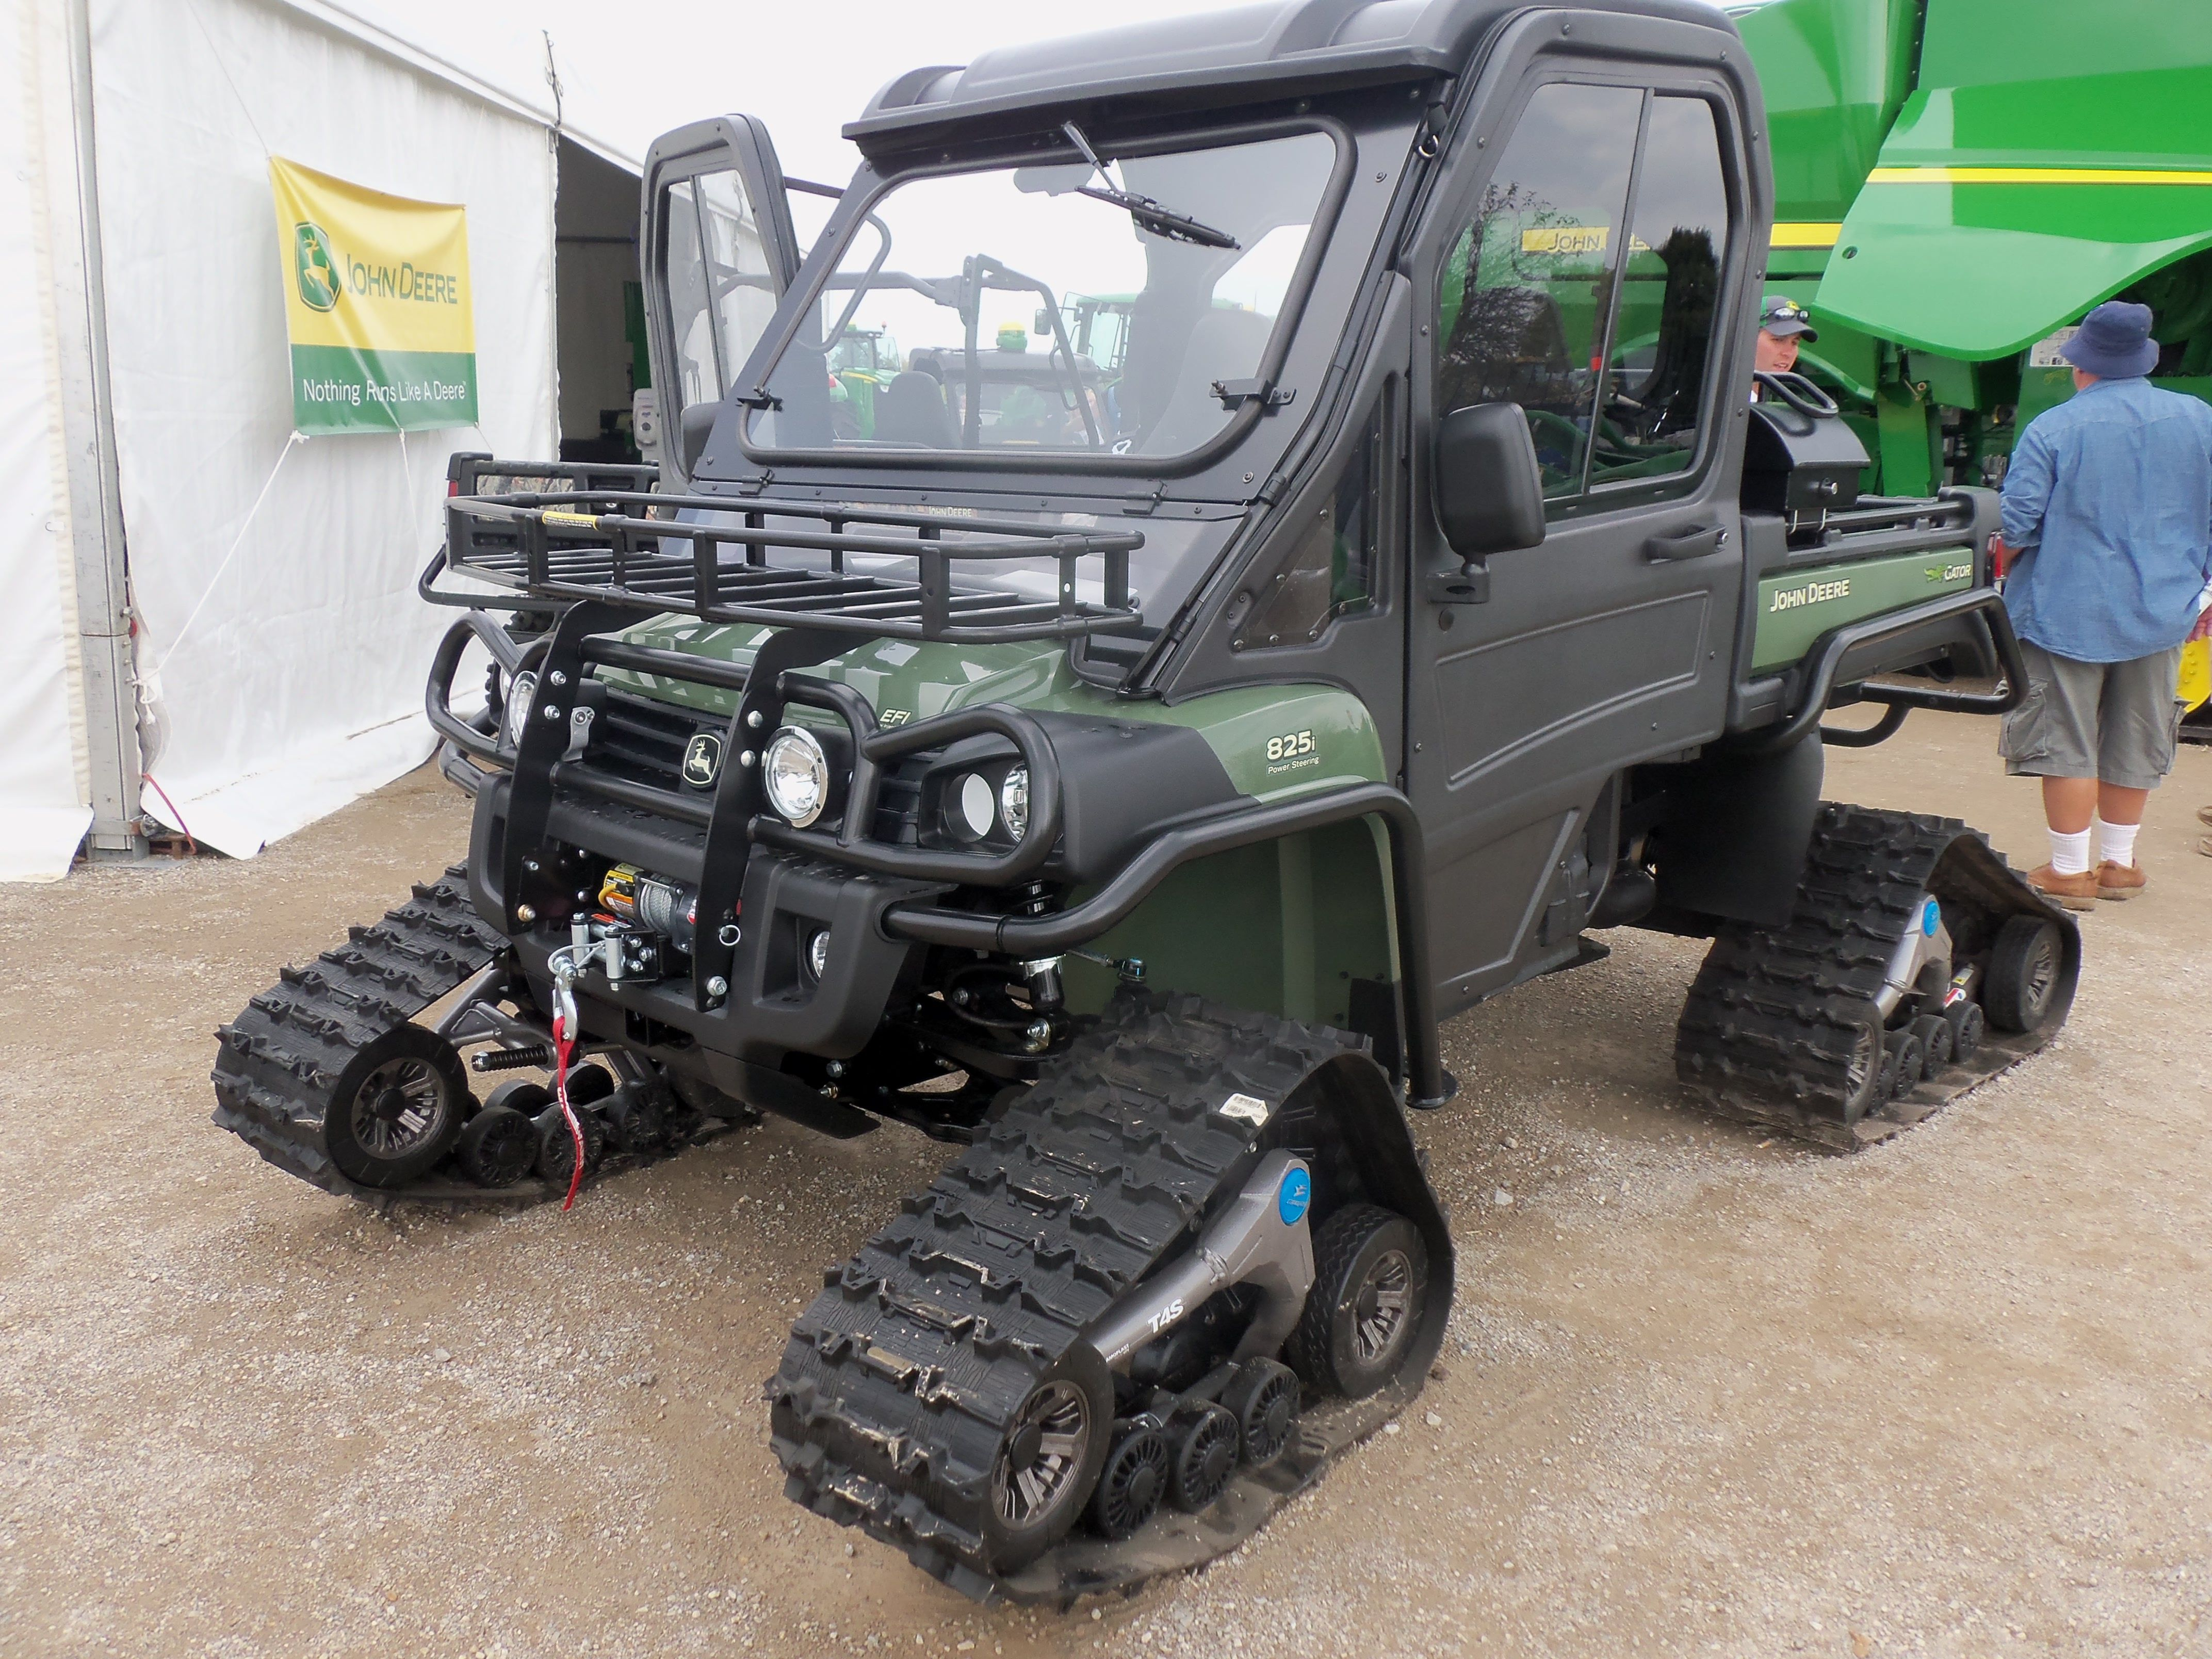 hight resolution of john deere gator 825i the tracks on this gator are brand new according to the jd guy we talked to here